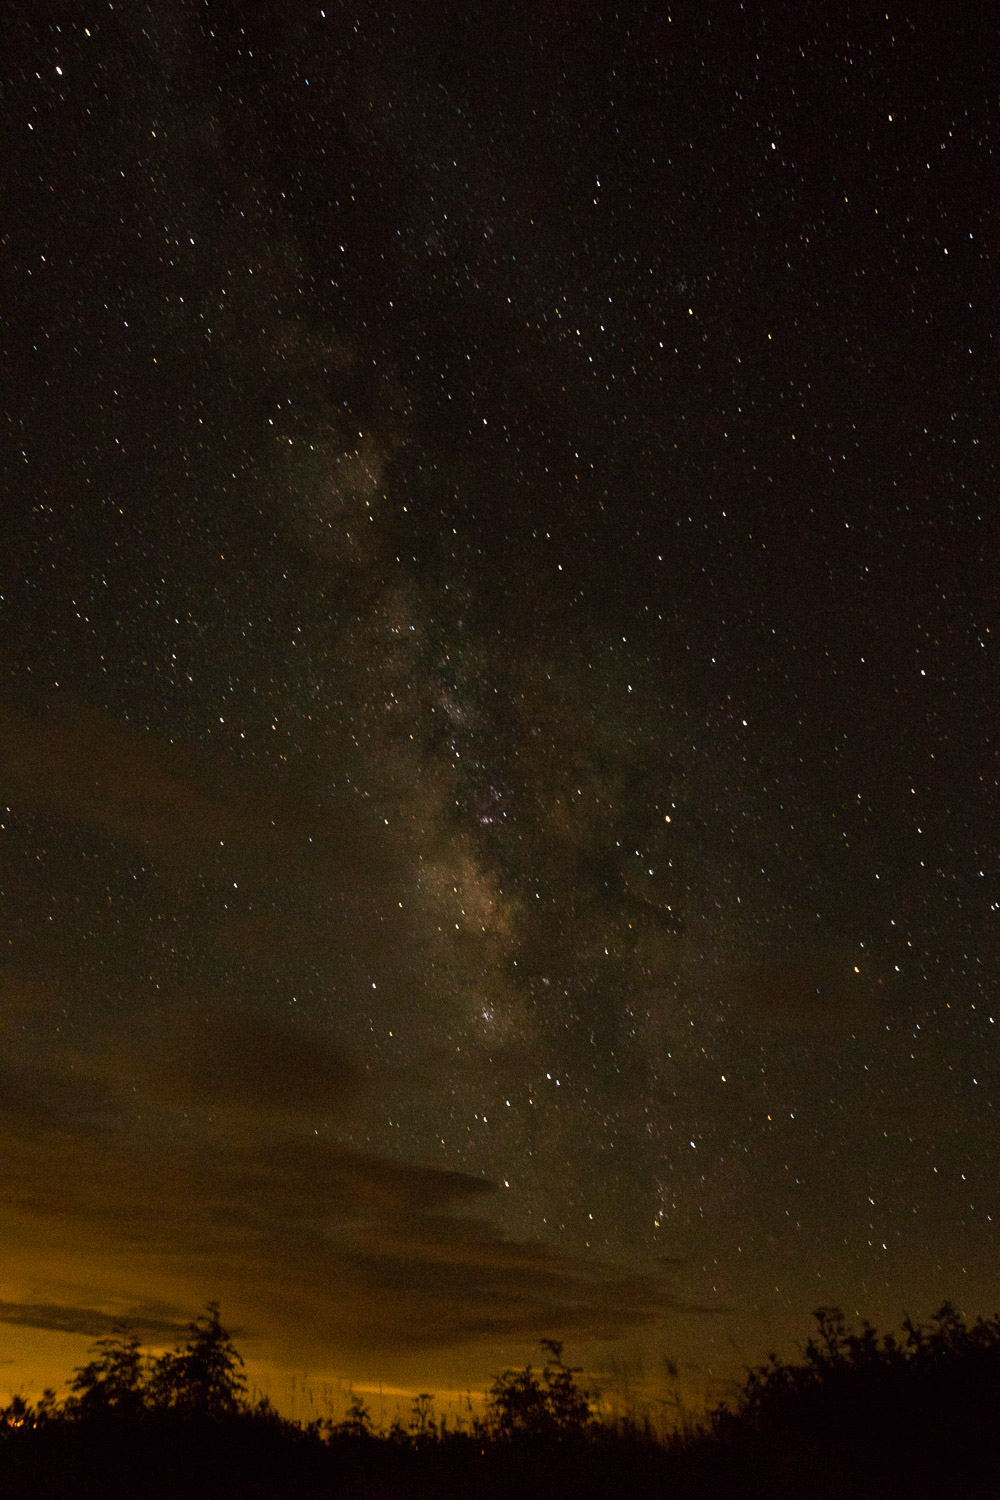 Since the cloud cover was blocking the view of the Perseids meteor shower I played around with taking a photo of the Milky Way